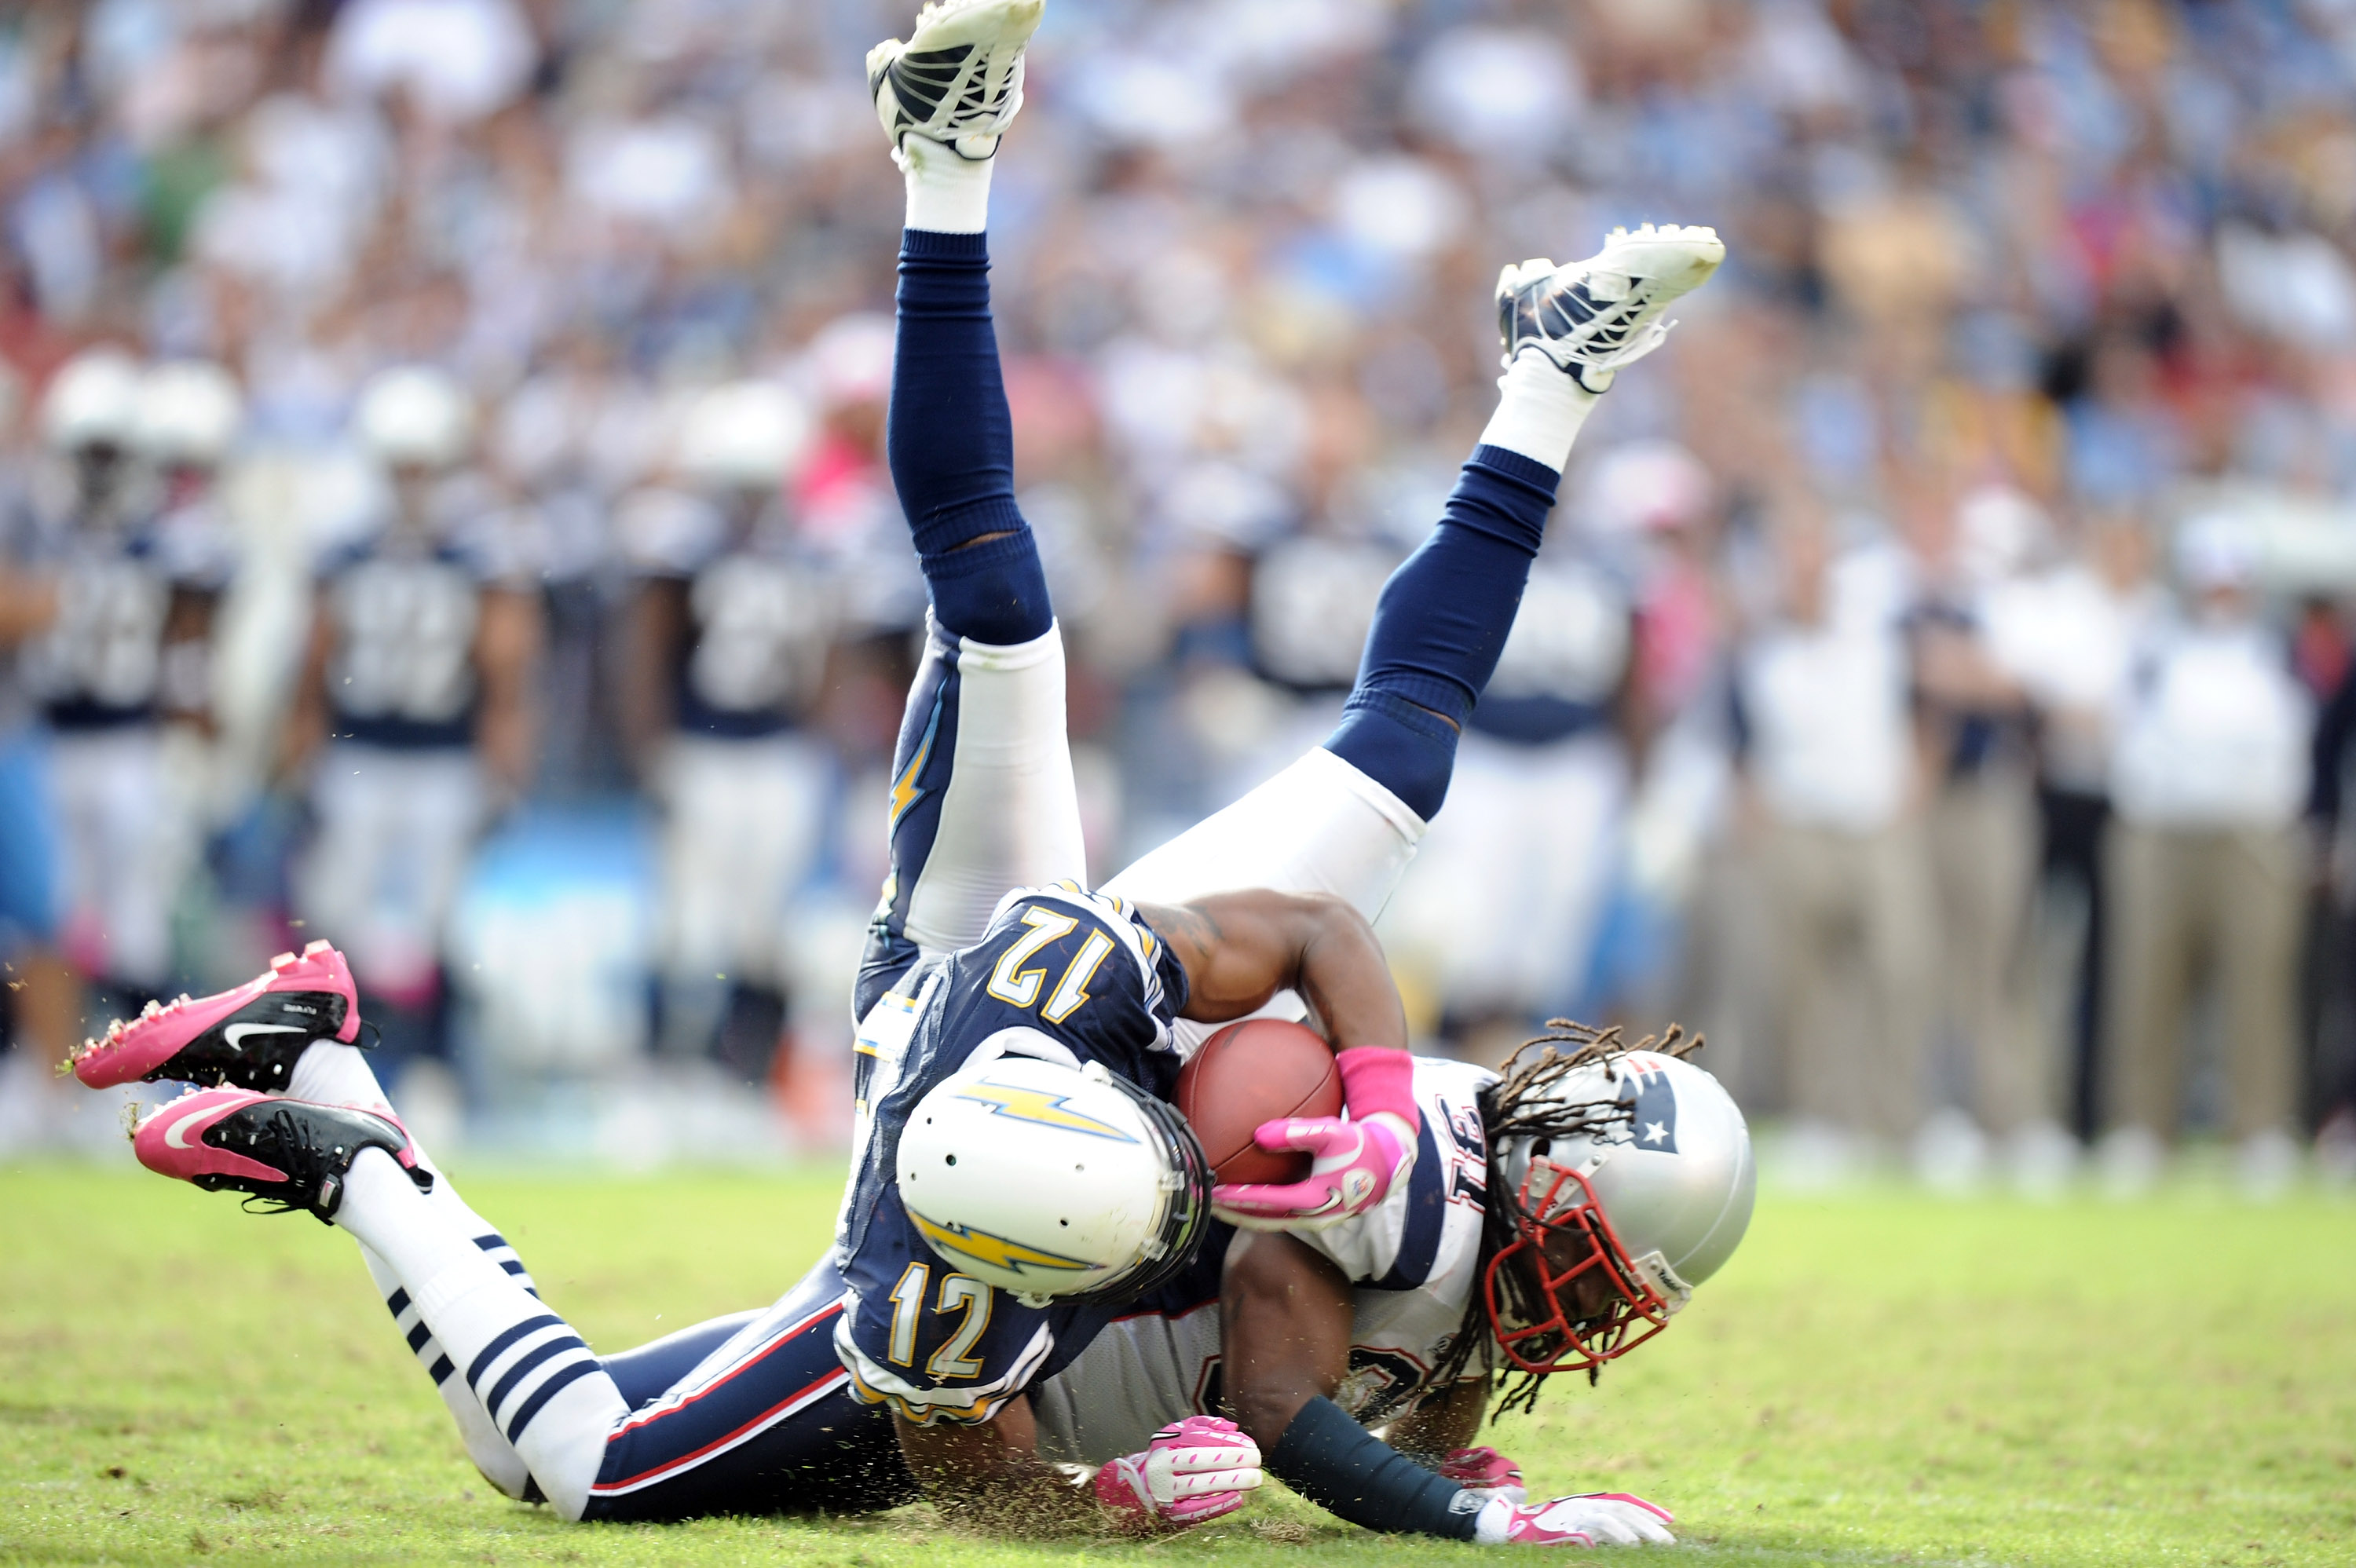 SAN DIEGO - OCTOBER 24:  Brandon Meriweather #31 of the New England Patriots up ends Patrick Crayton #12 of the San Diego Chargers during the fourth quarter at Qualcomm Stadium on October 24, 2010 in San Diego, California.  (Photo by Harry How/Getty Image